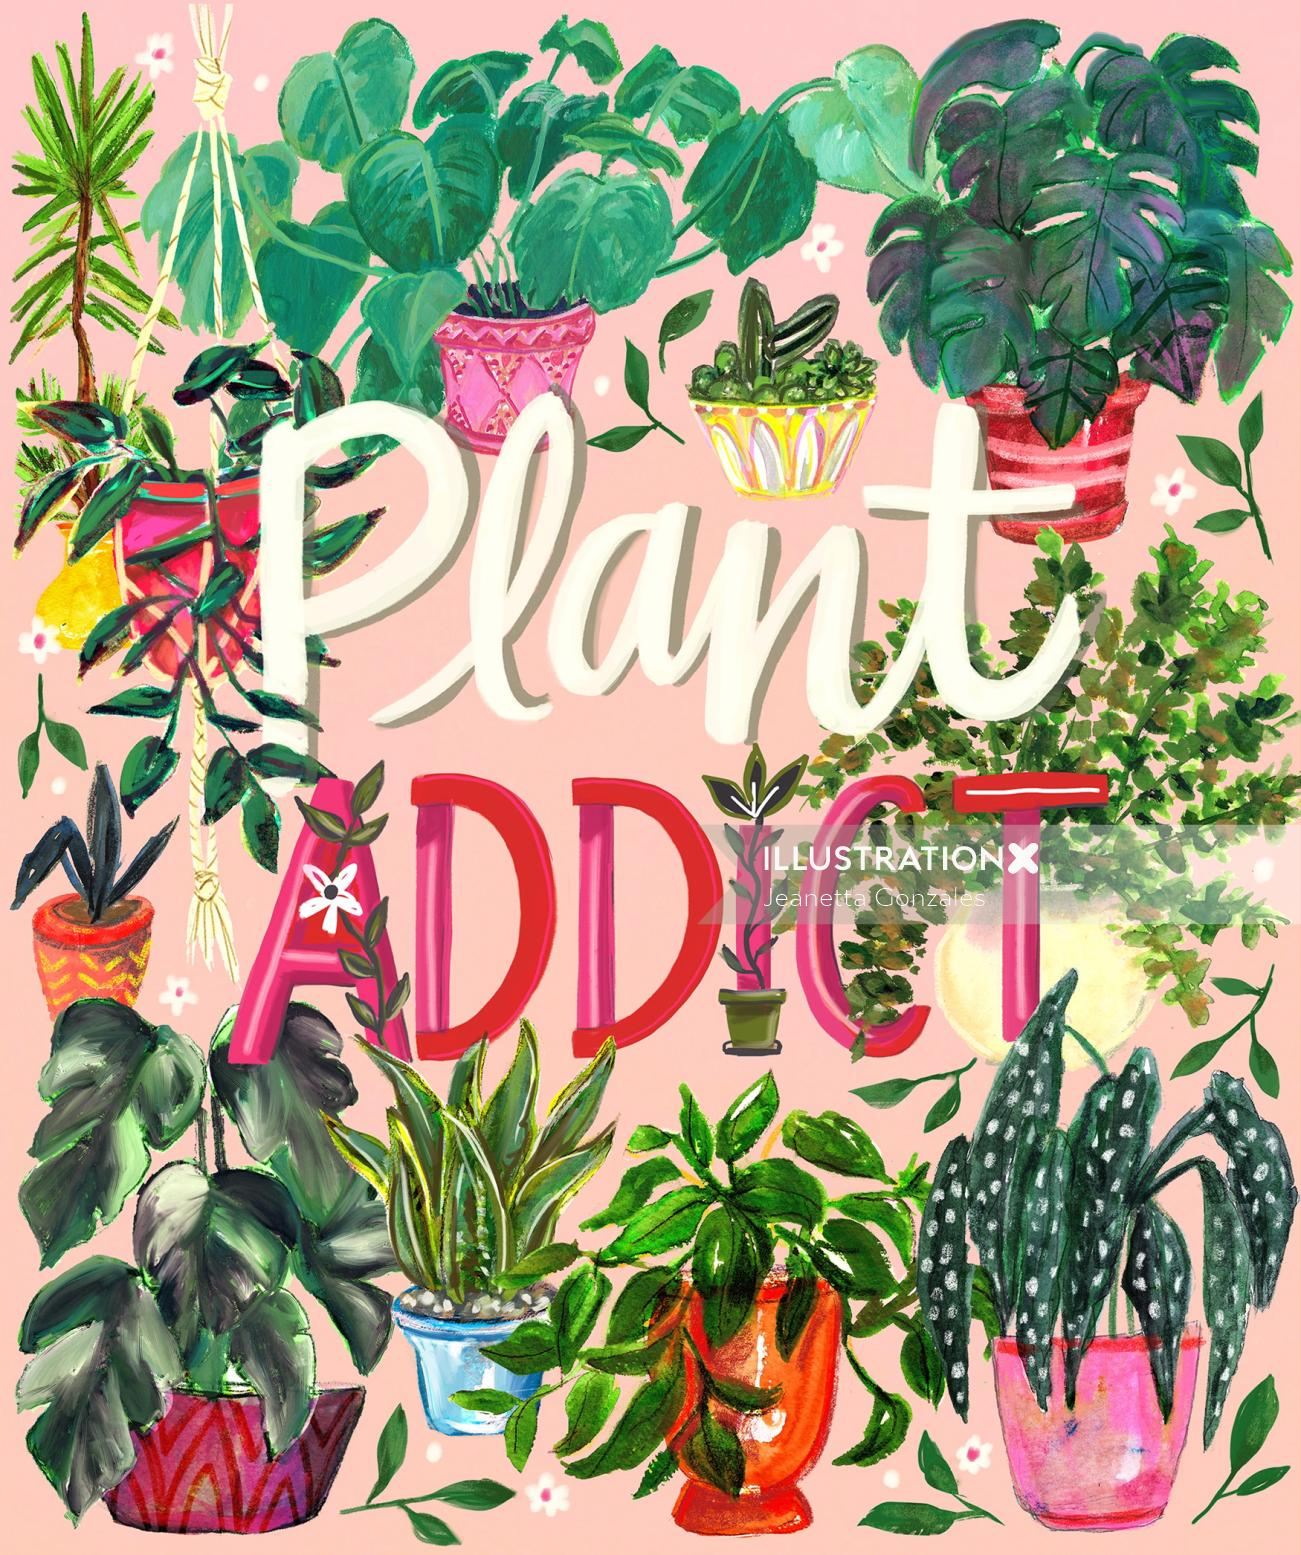 Calligraphy art of plant addict